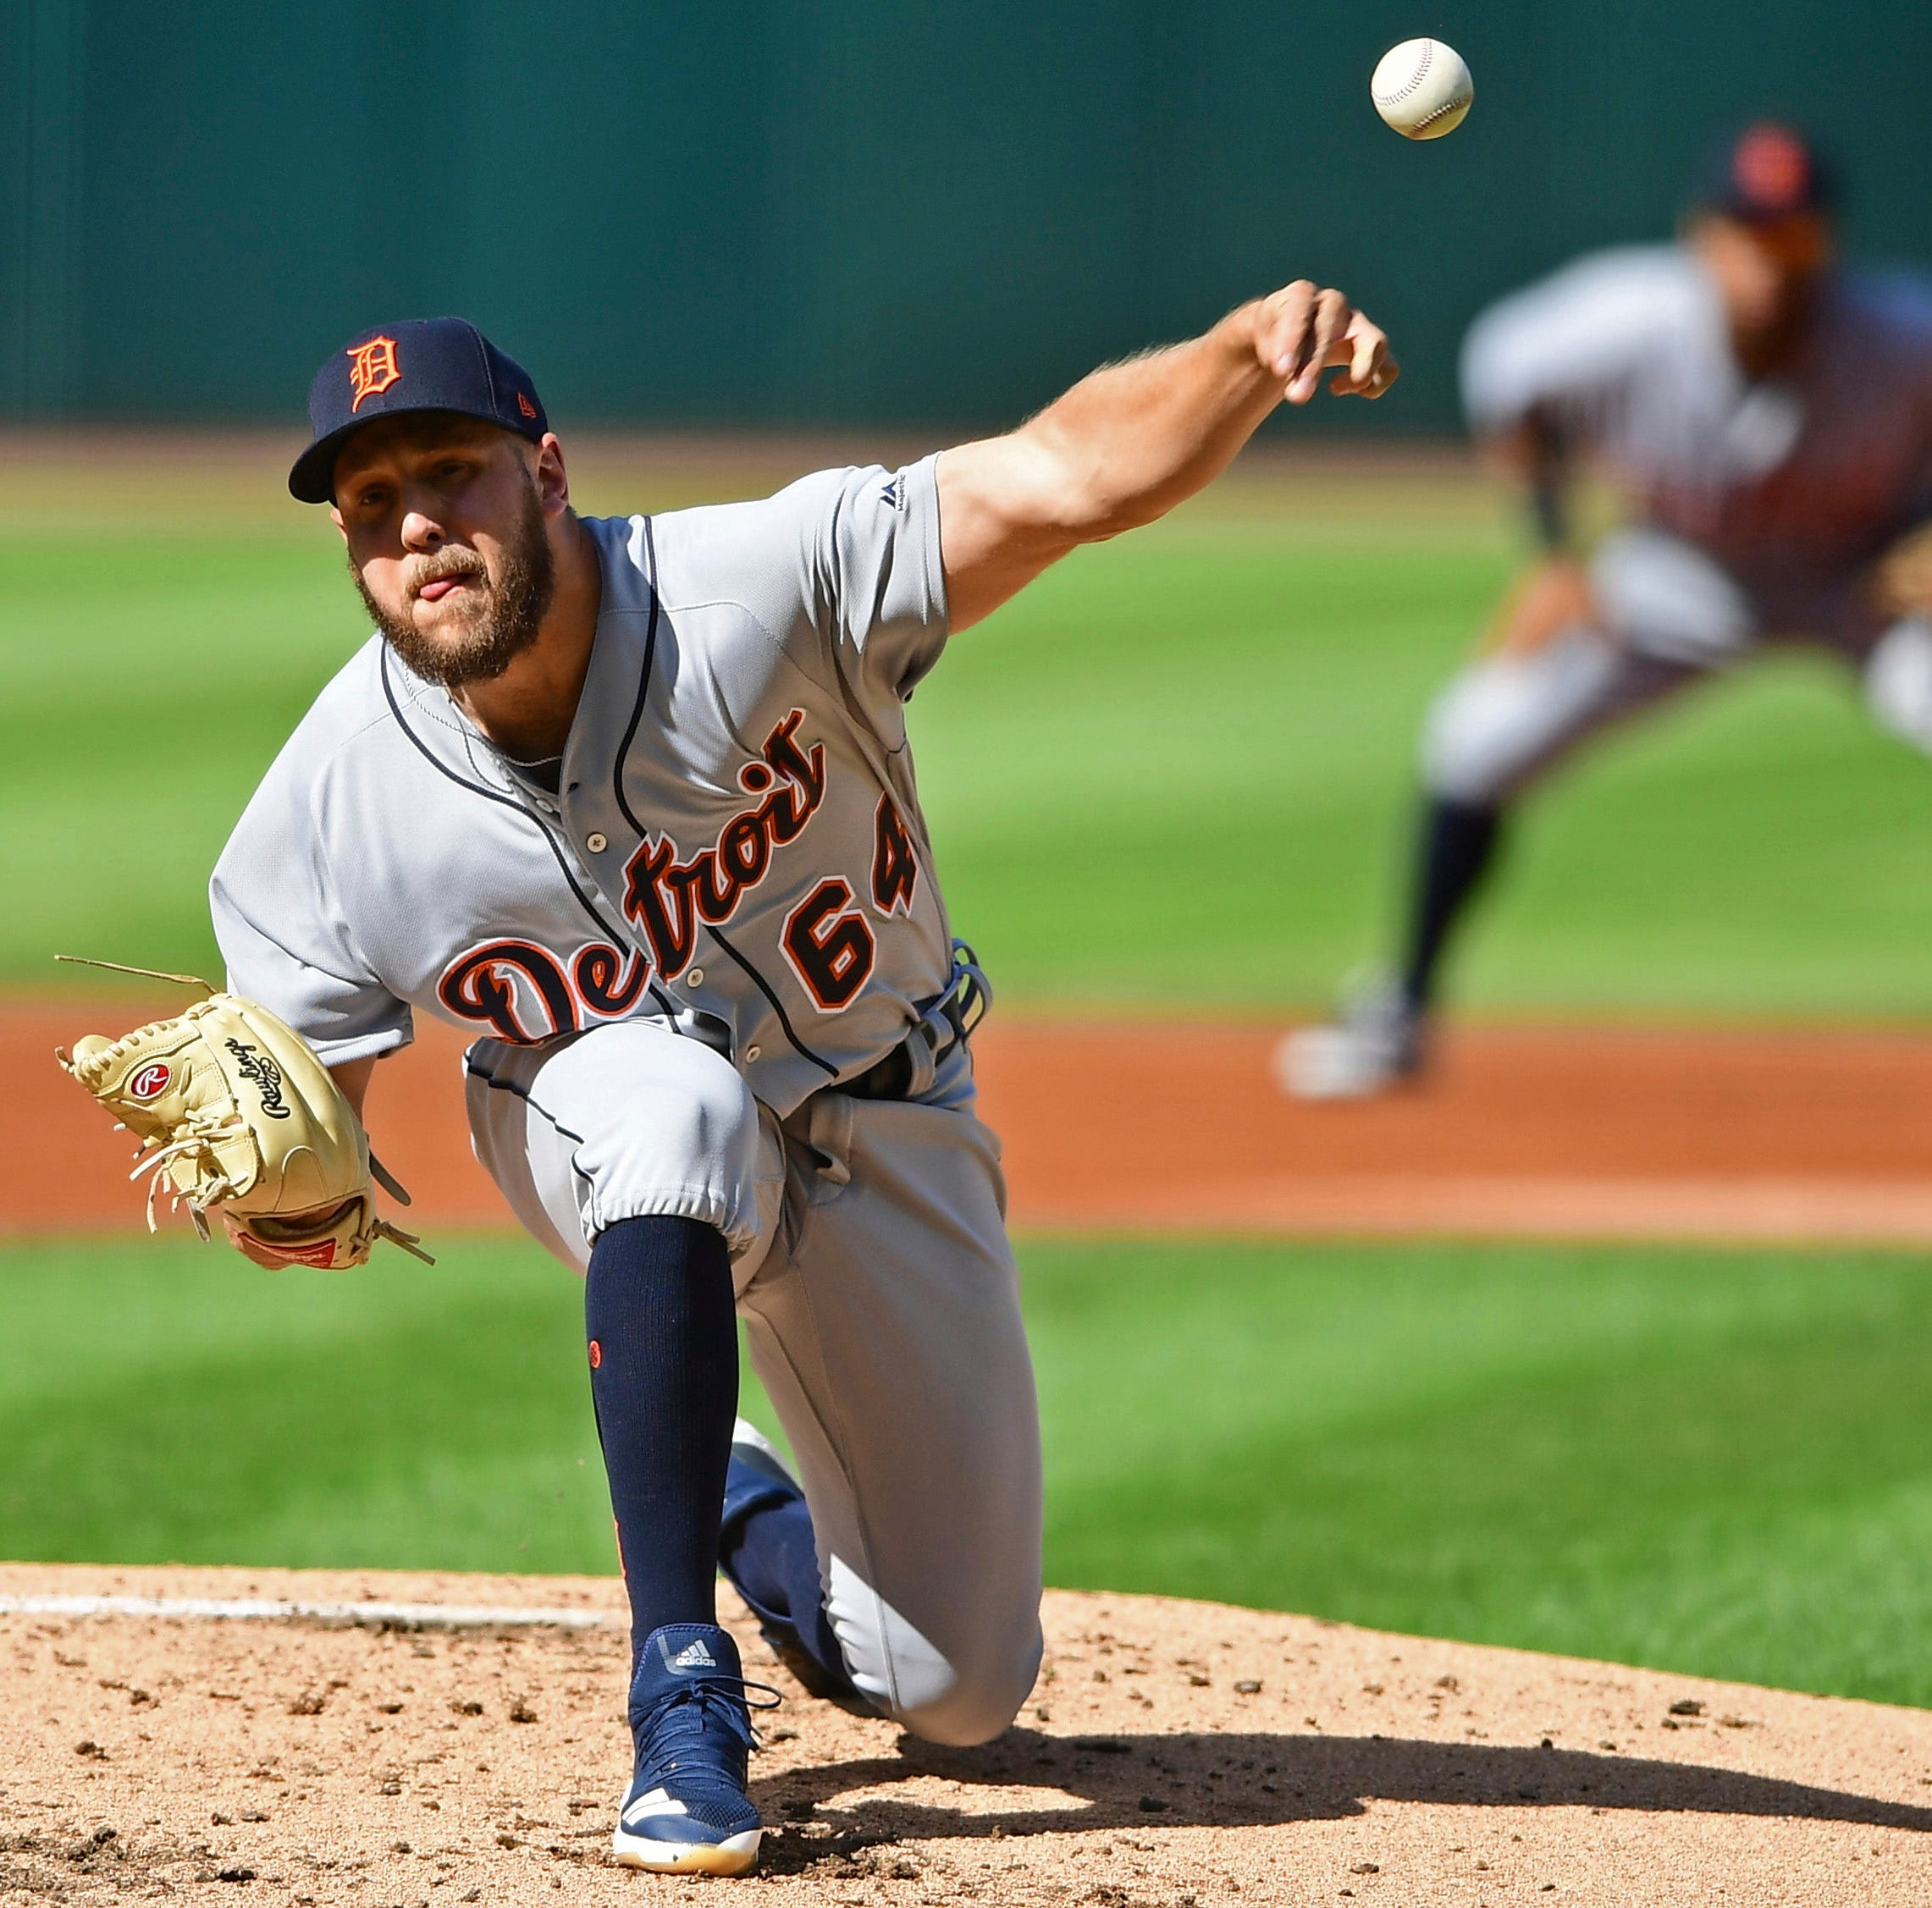 Tigers pitcher Matt Hall delivers in the first inning on Saturday in Cleveland.